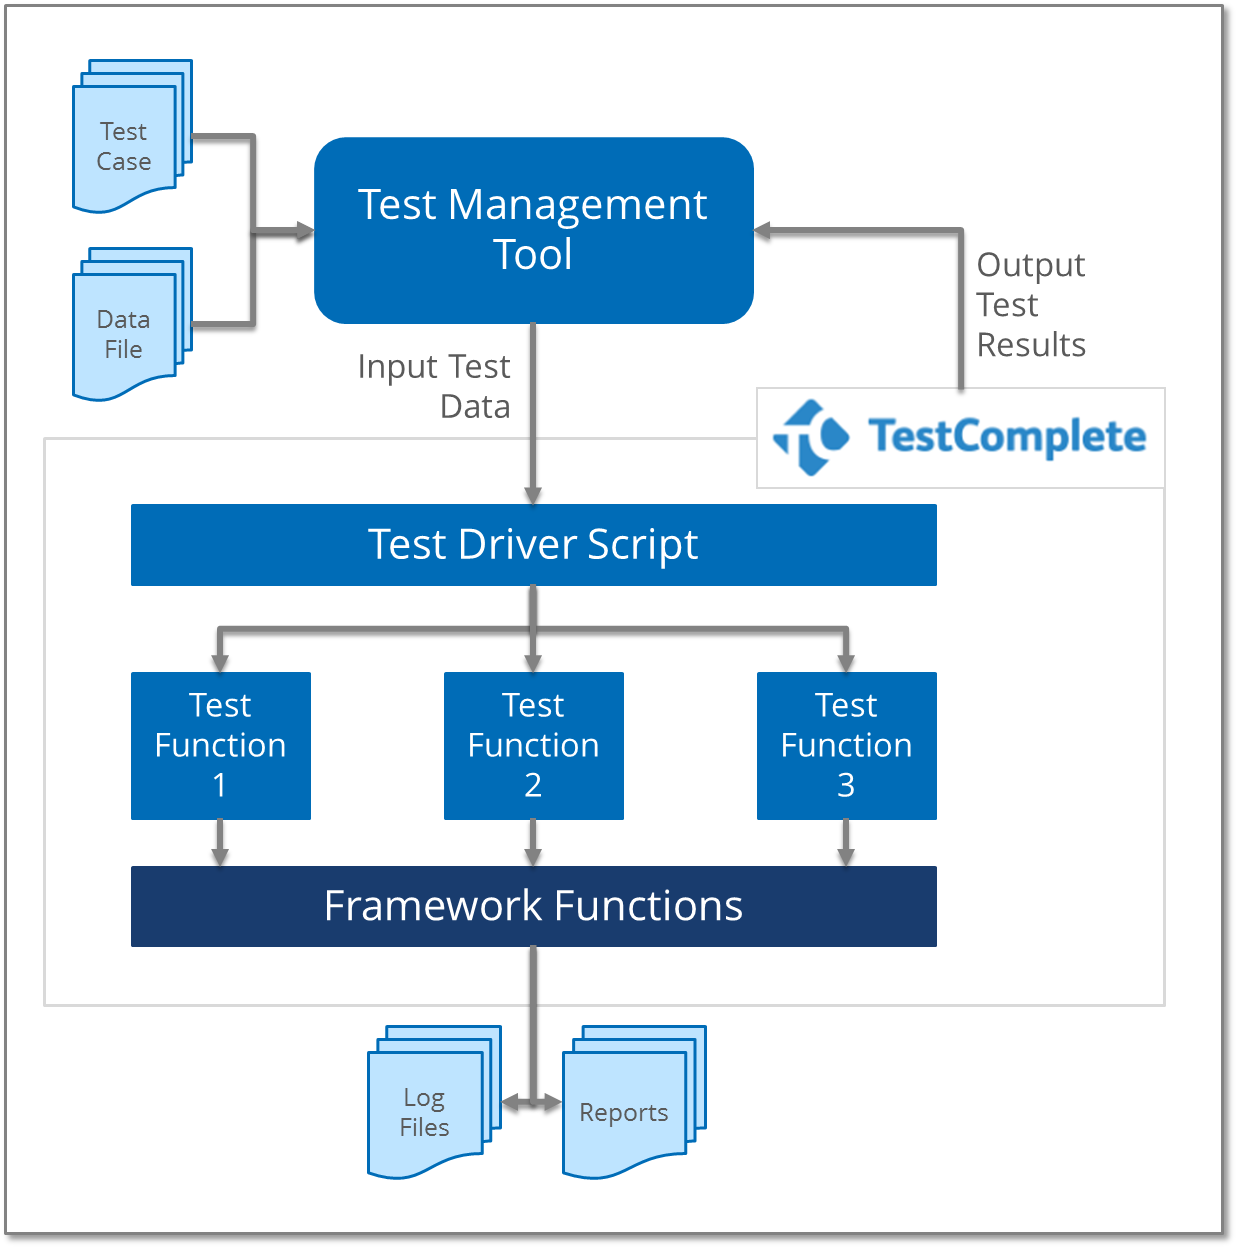 Using a Test Management Tool which is then integrated with Test Complete, a Test Driver Script is used to create the individual test functions. This separation allows for greater flexibility.